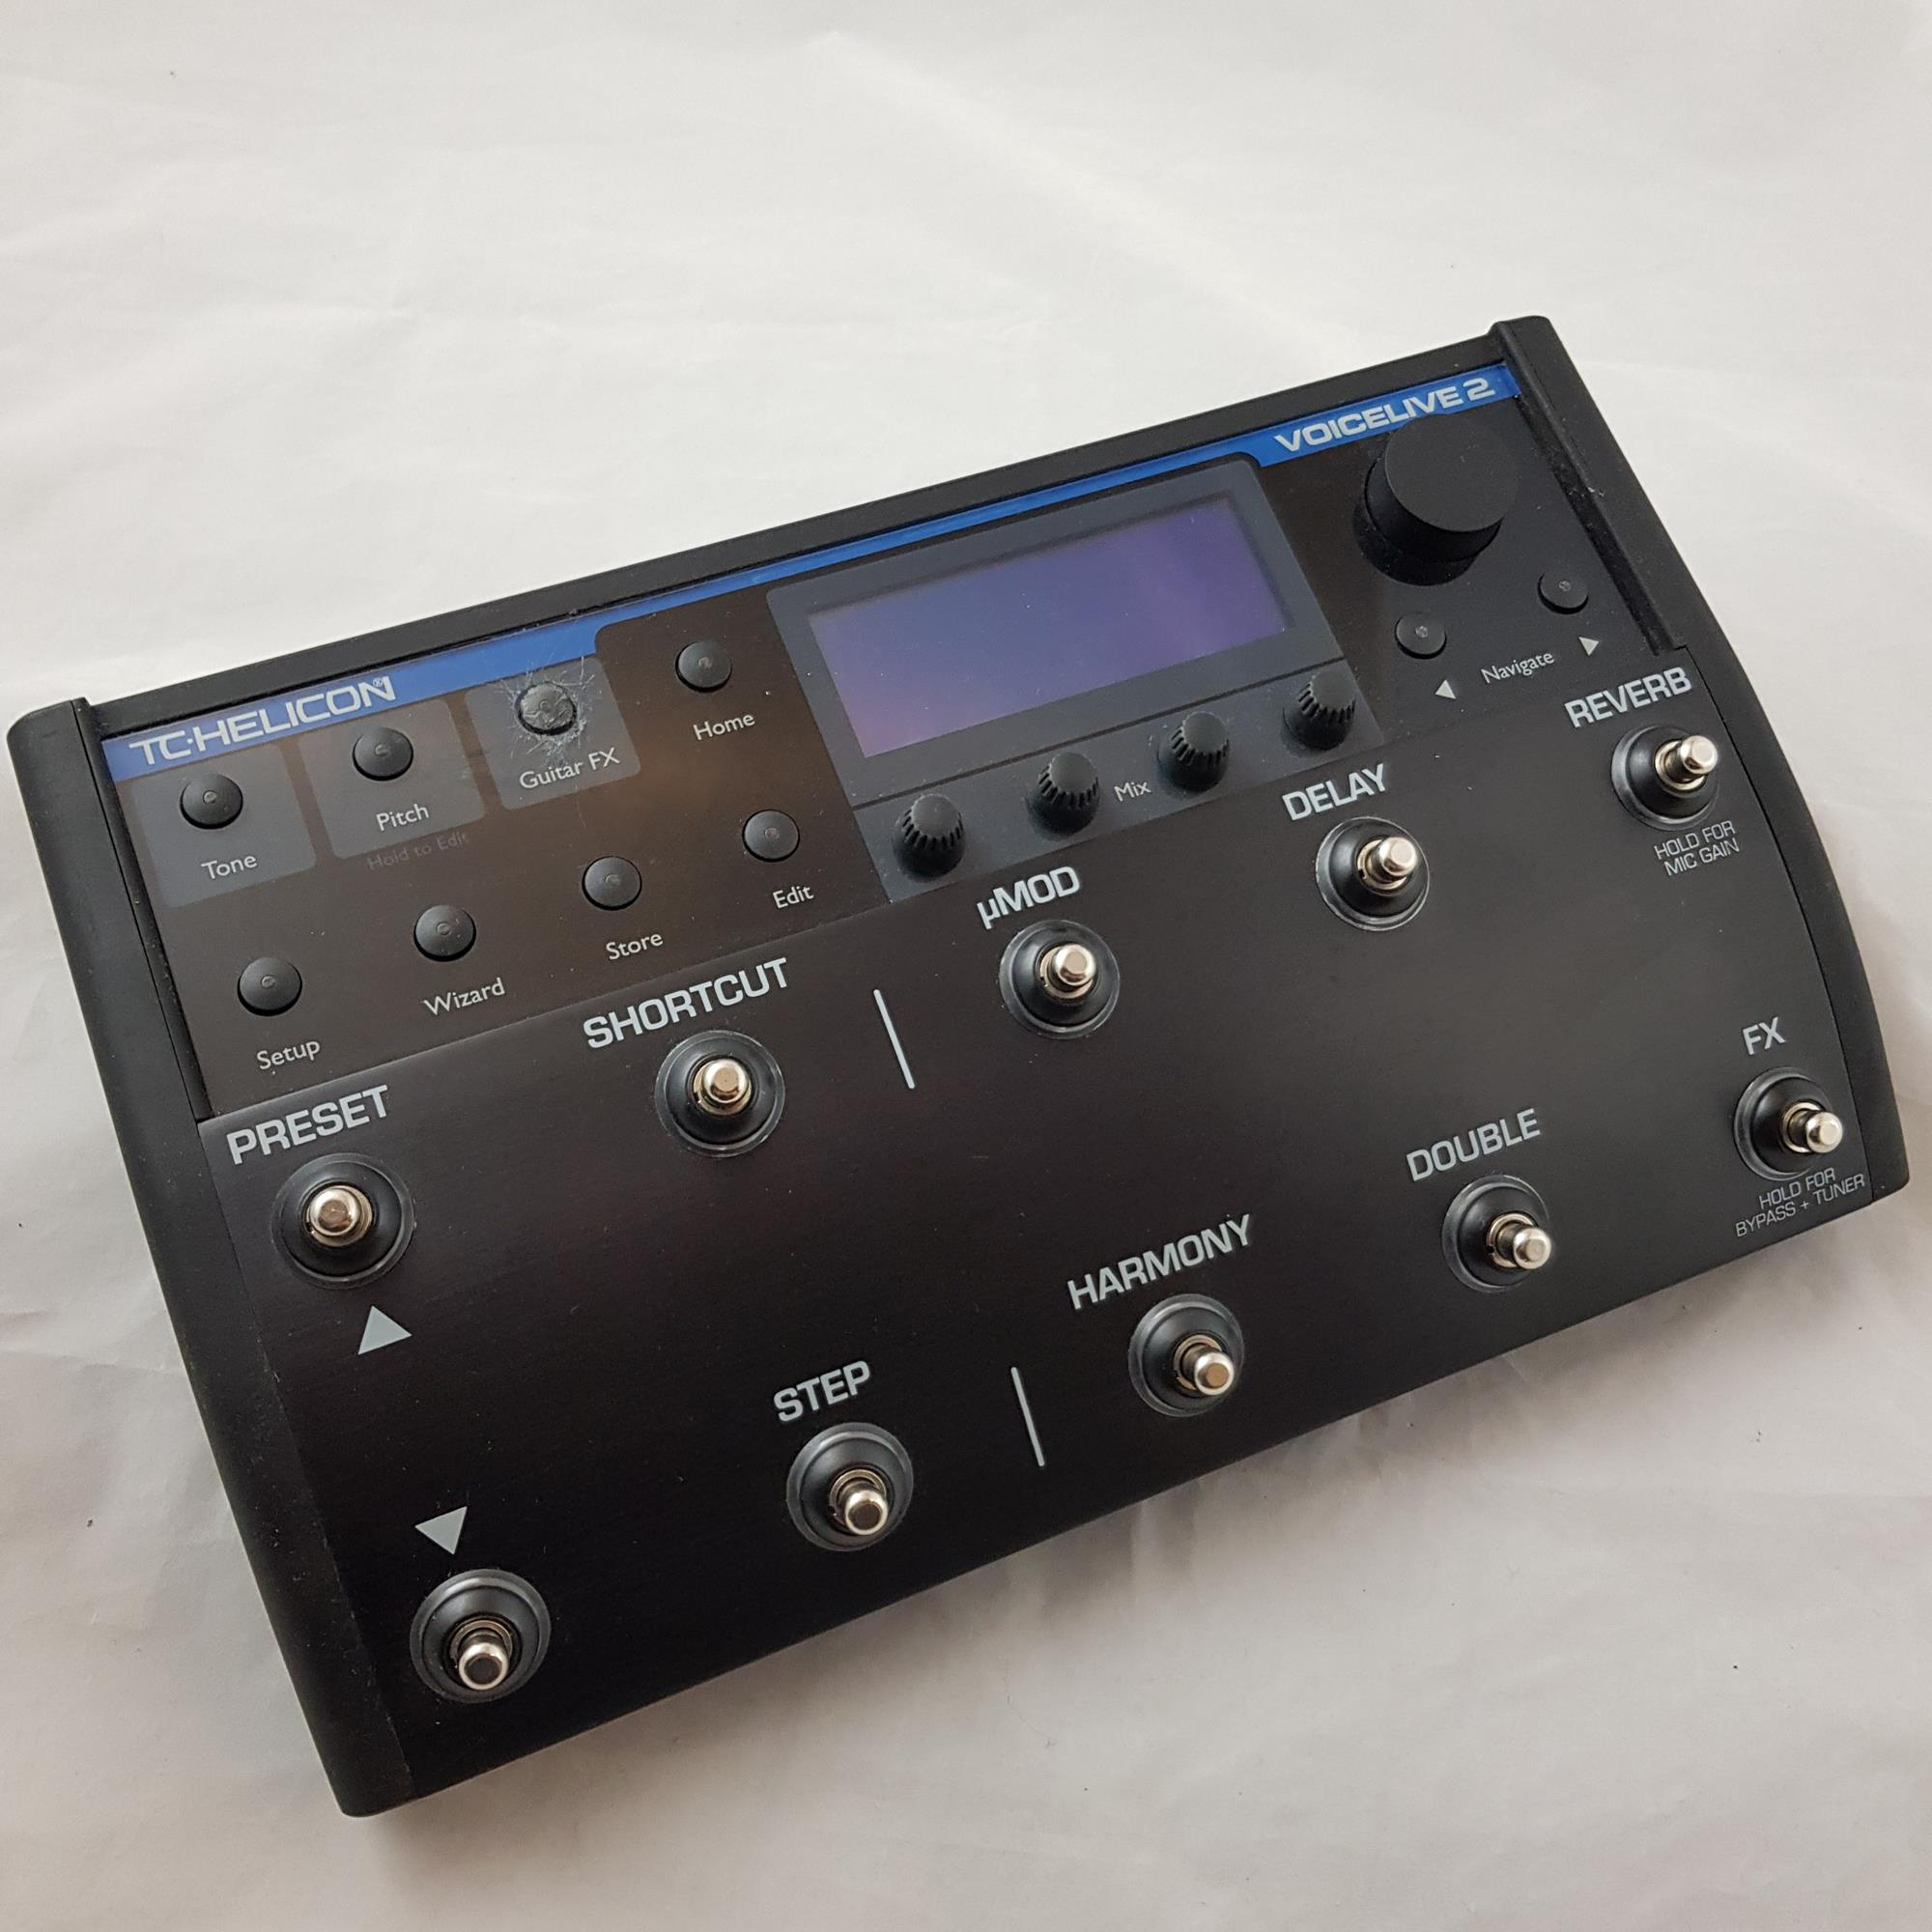 TC-HELICON-VOICELIVE-2-sku-1602345766130